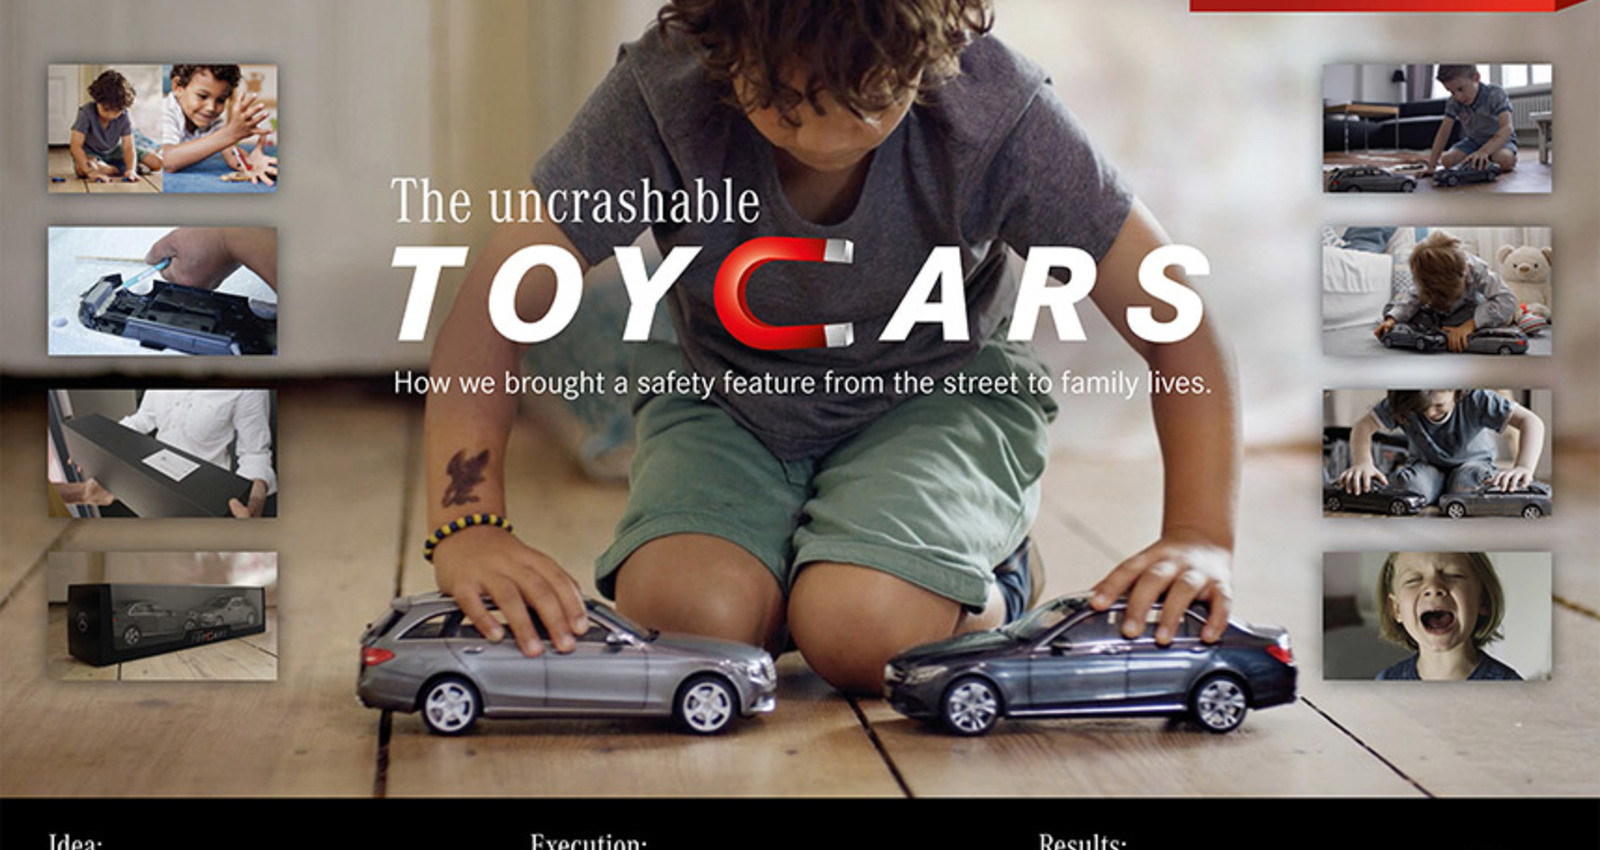 The Uncrashable Toycars